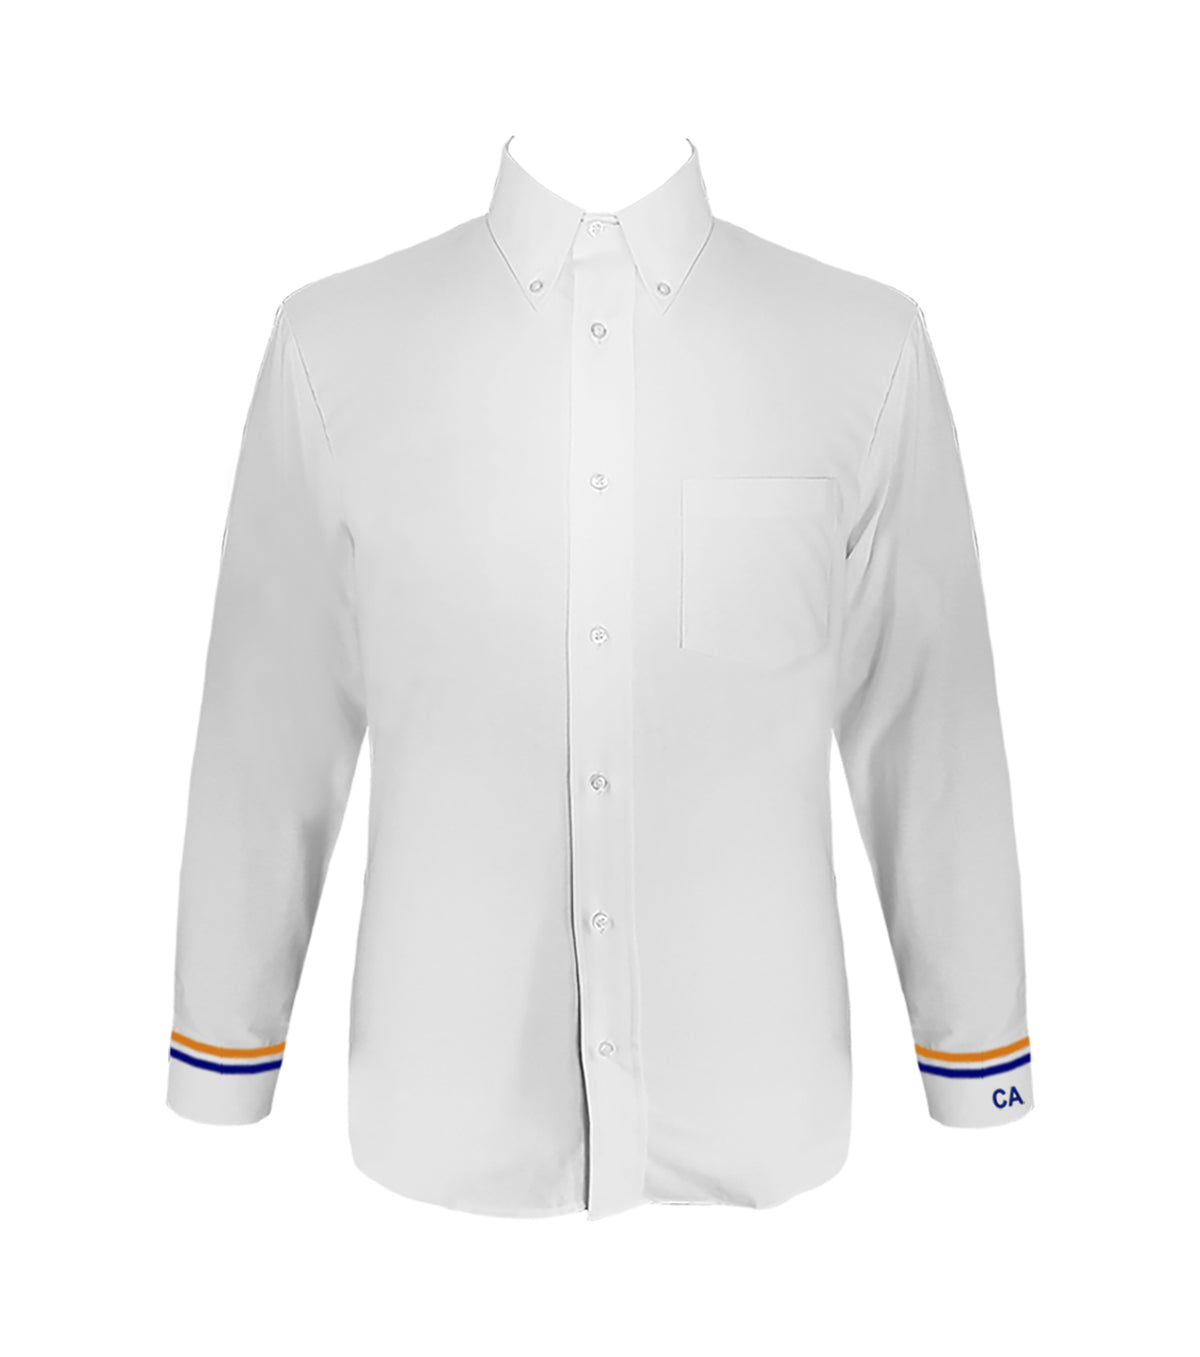 COLUMBIA DRESS SHIRT WITH EMBROIDERY ON LEFT CUFF AND BANDING, LONG SLEEVE, MENS